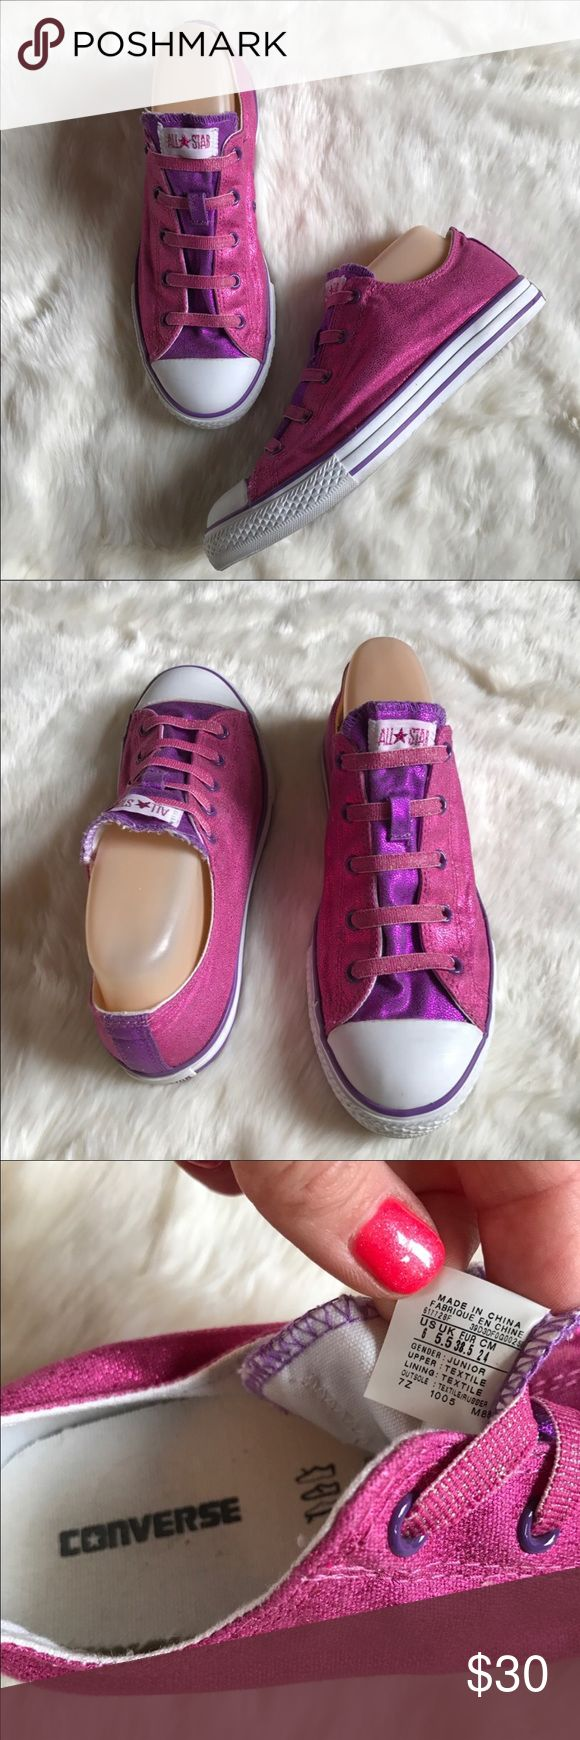 Converse slip on shoe Size 38.5 Converse All Star- Pink and purple glitter shimmer slip on shoe🌸⭐️ Very cute and comfortable. Worn a few times. In great condition✨Size 38.5 Converse Shoes Sneakers